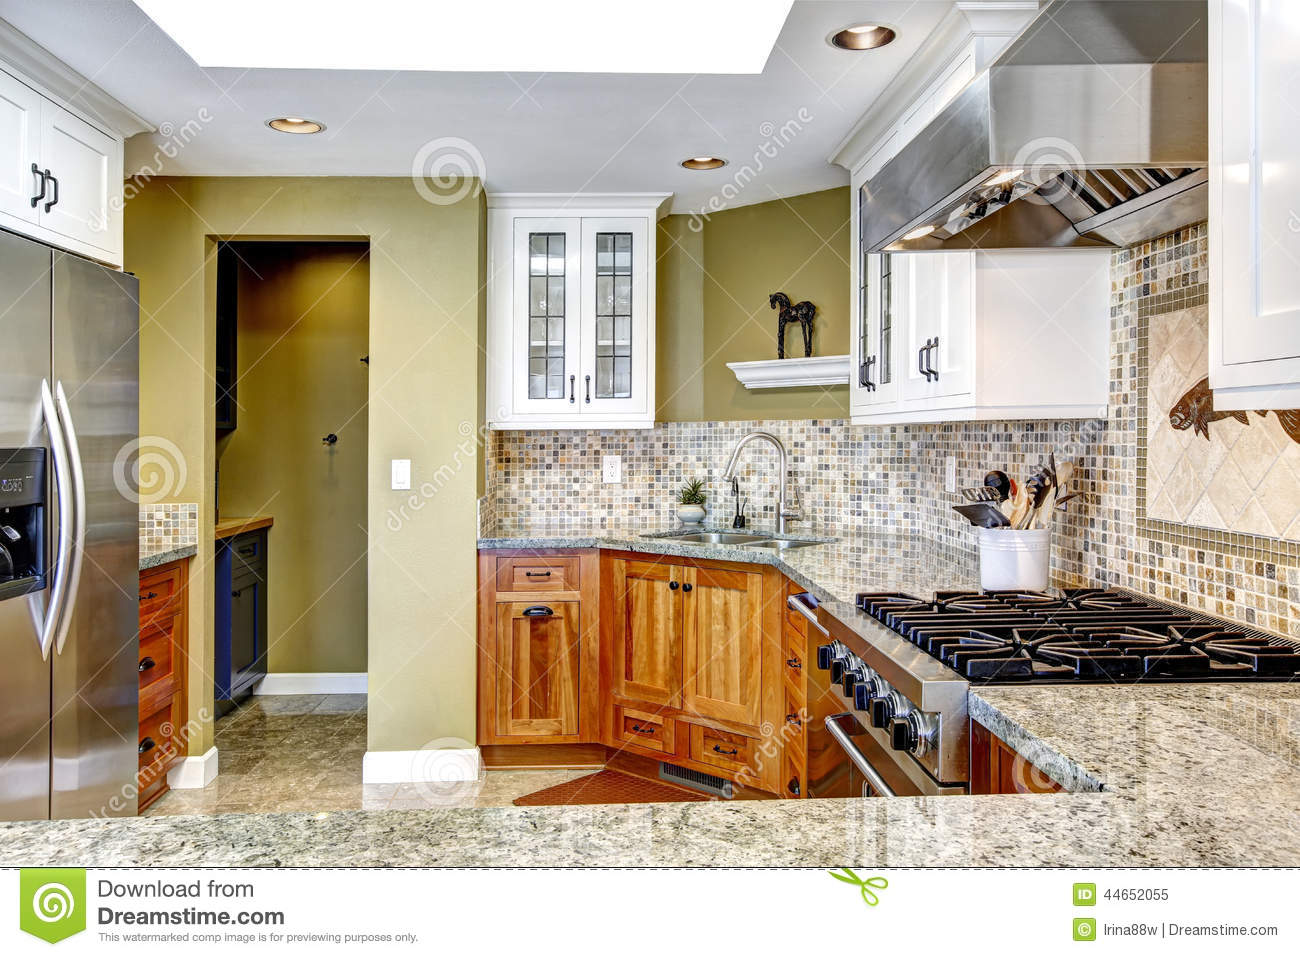 Modern house interior white and brown kitchen room with shiny granite tops and mosaic backsplash trim